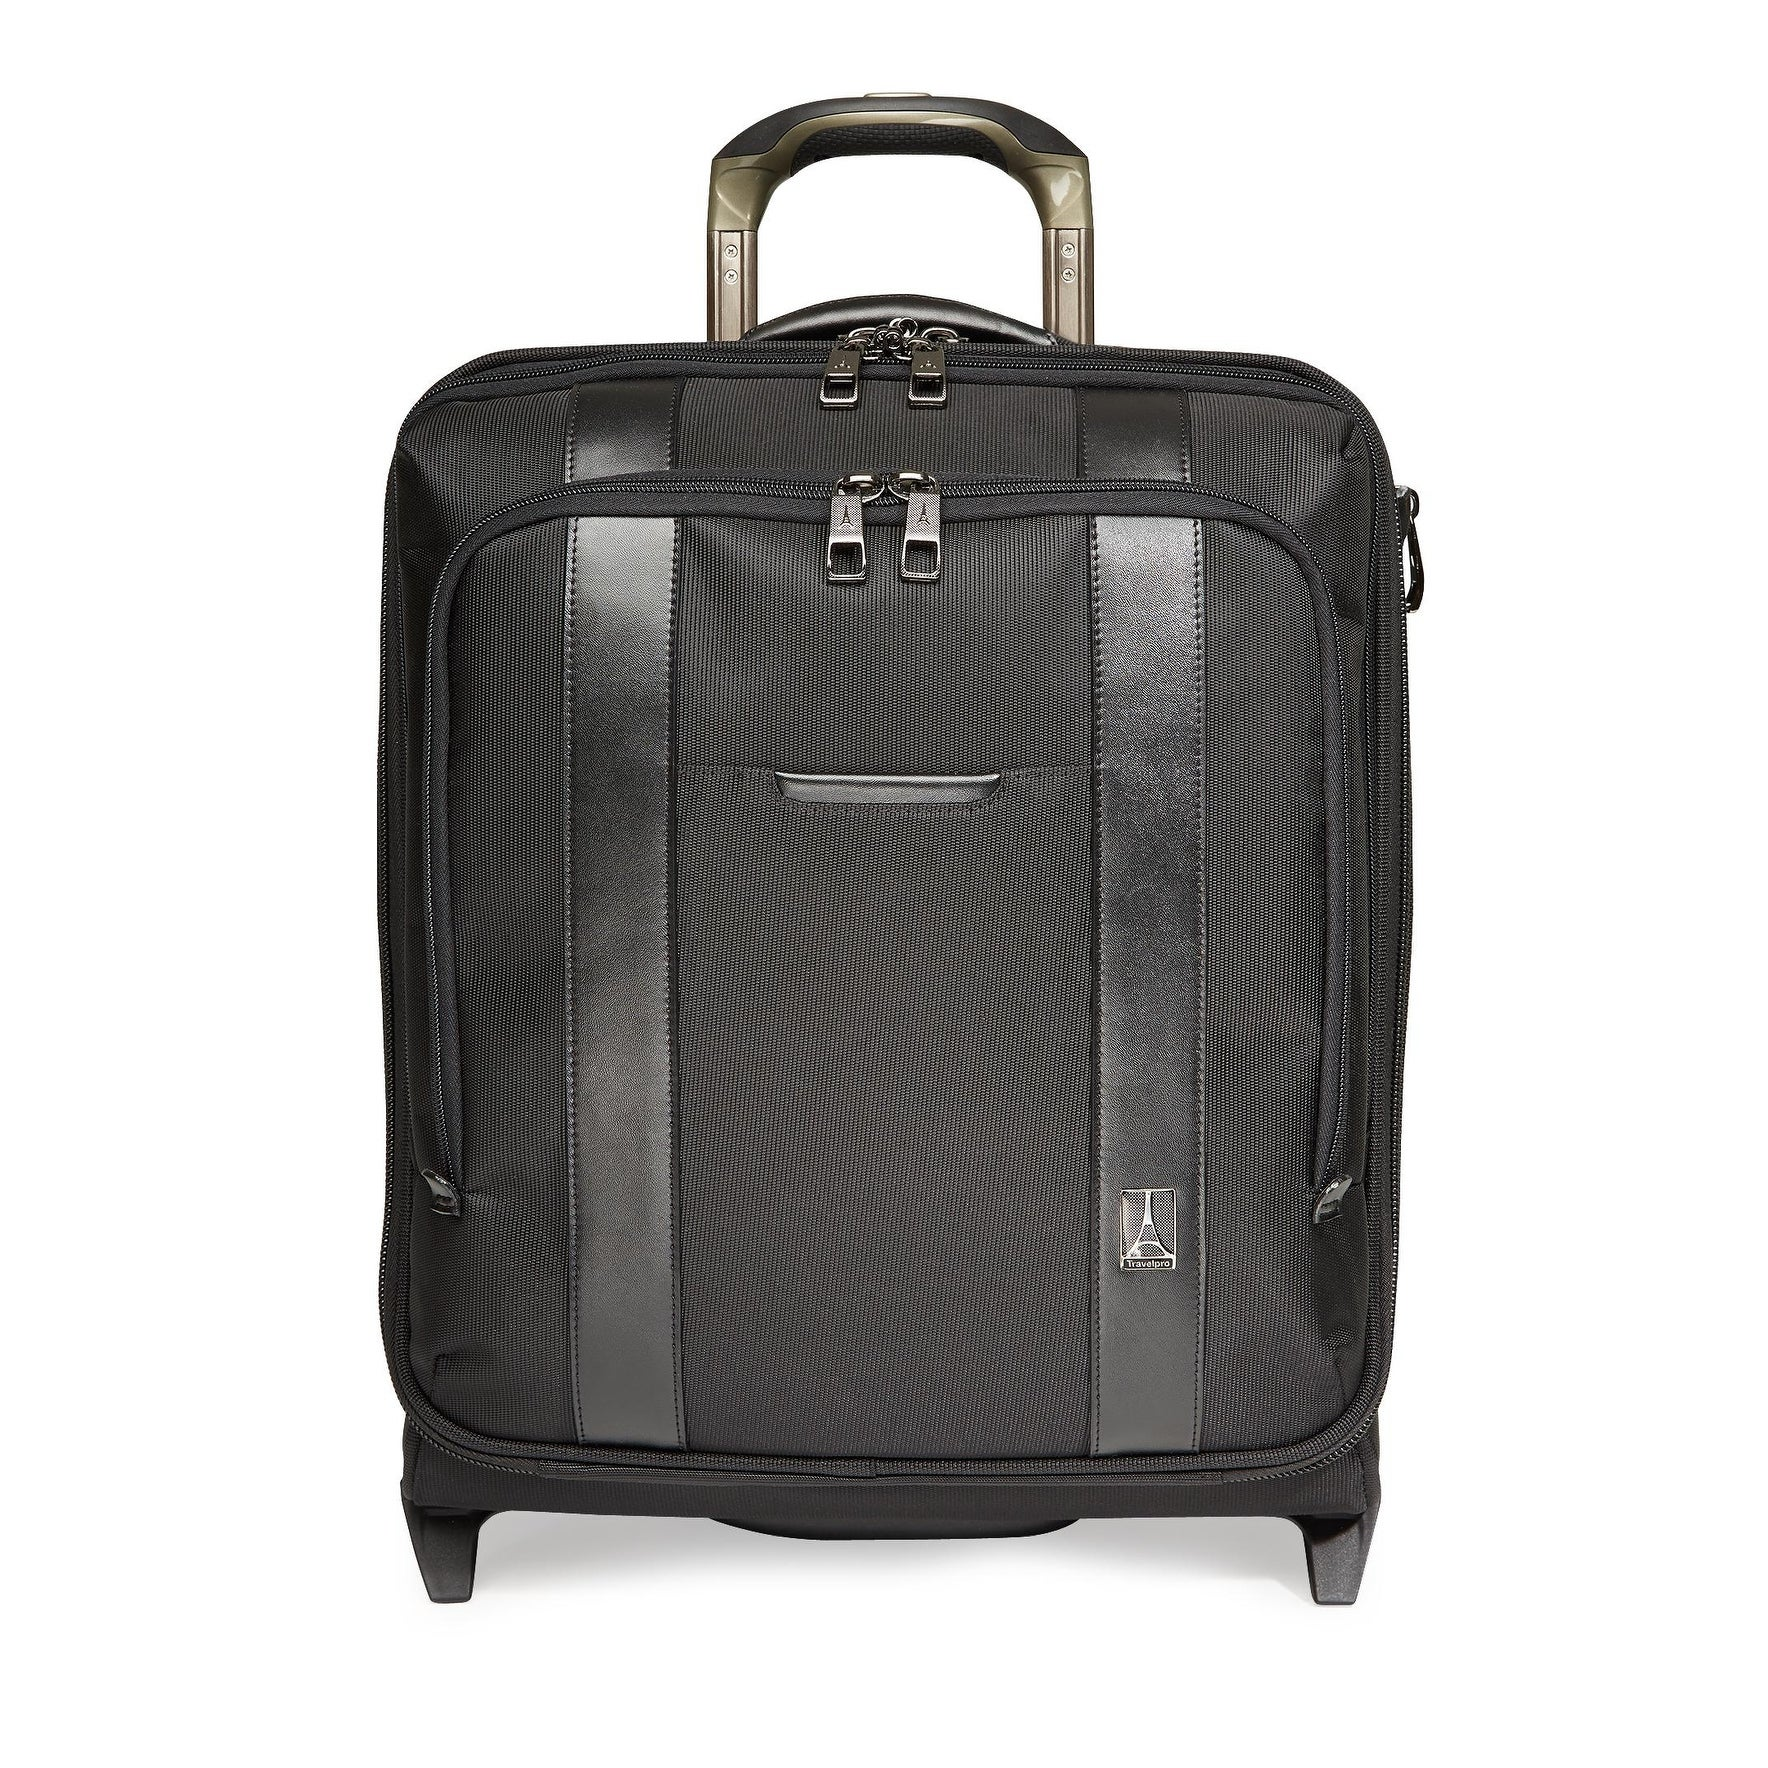 Travelpro Crew Executive Choice16 Inch Rolling Luggage Overnight Business Bag Free Shipping Today 14310757